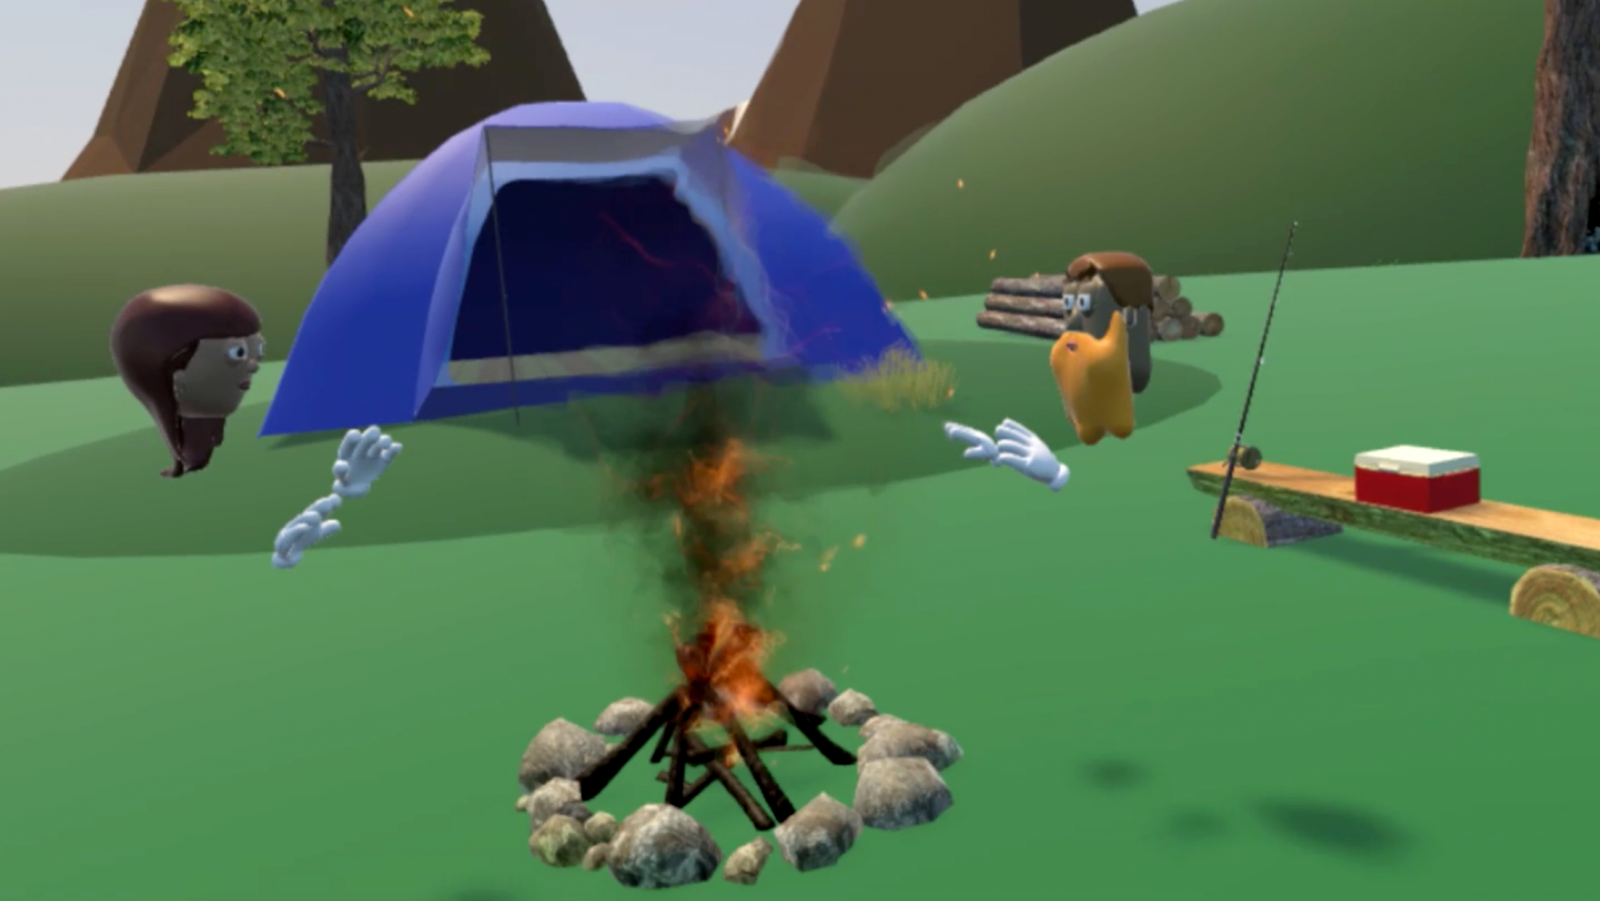 MetaWorld virtual reality camping